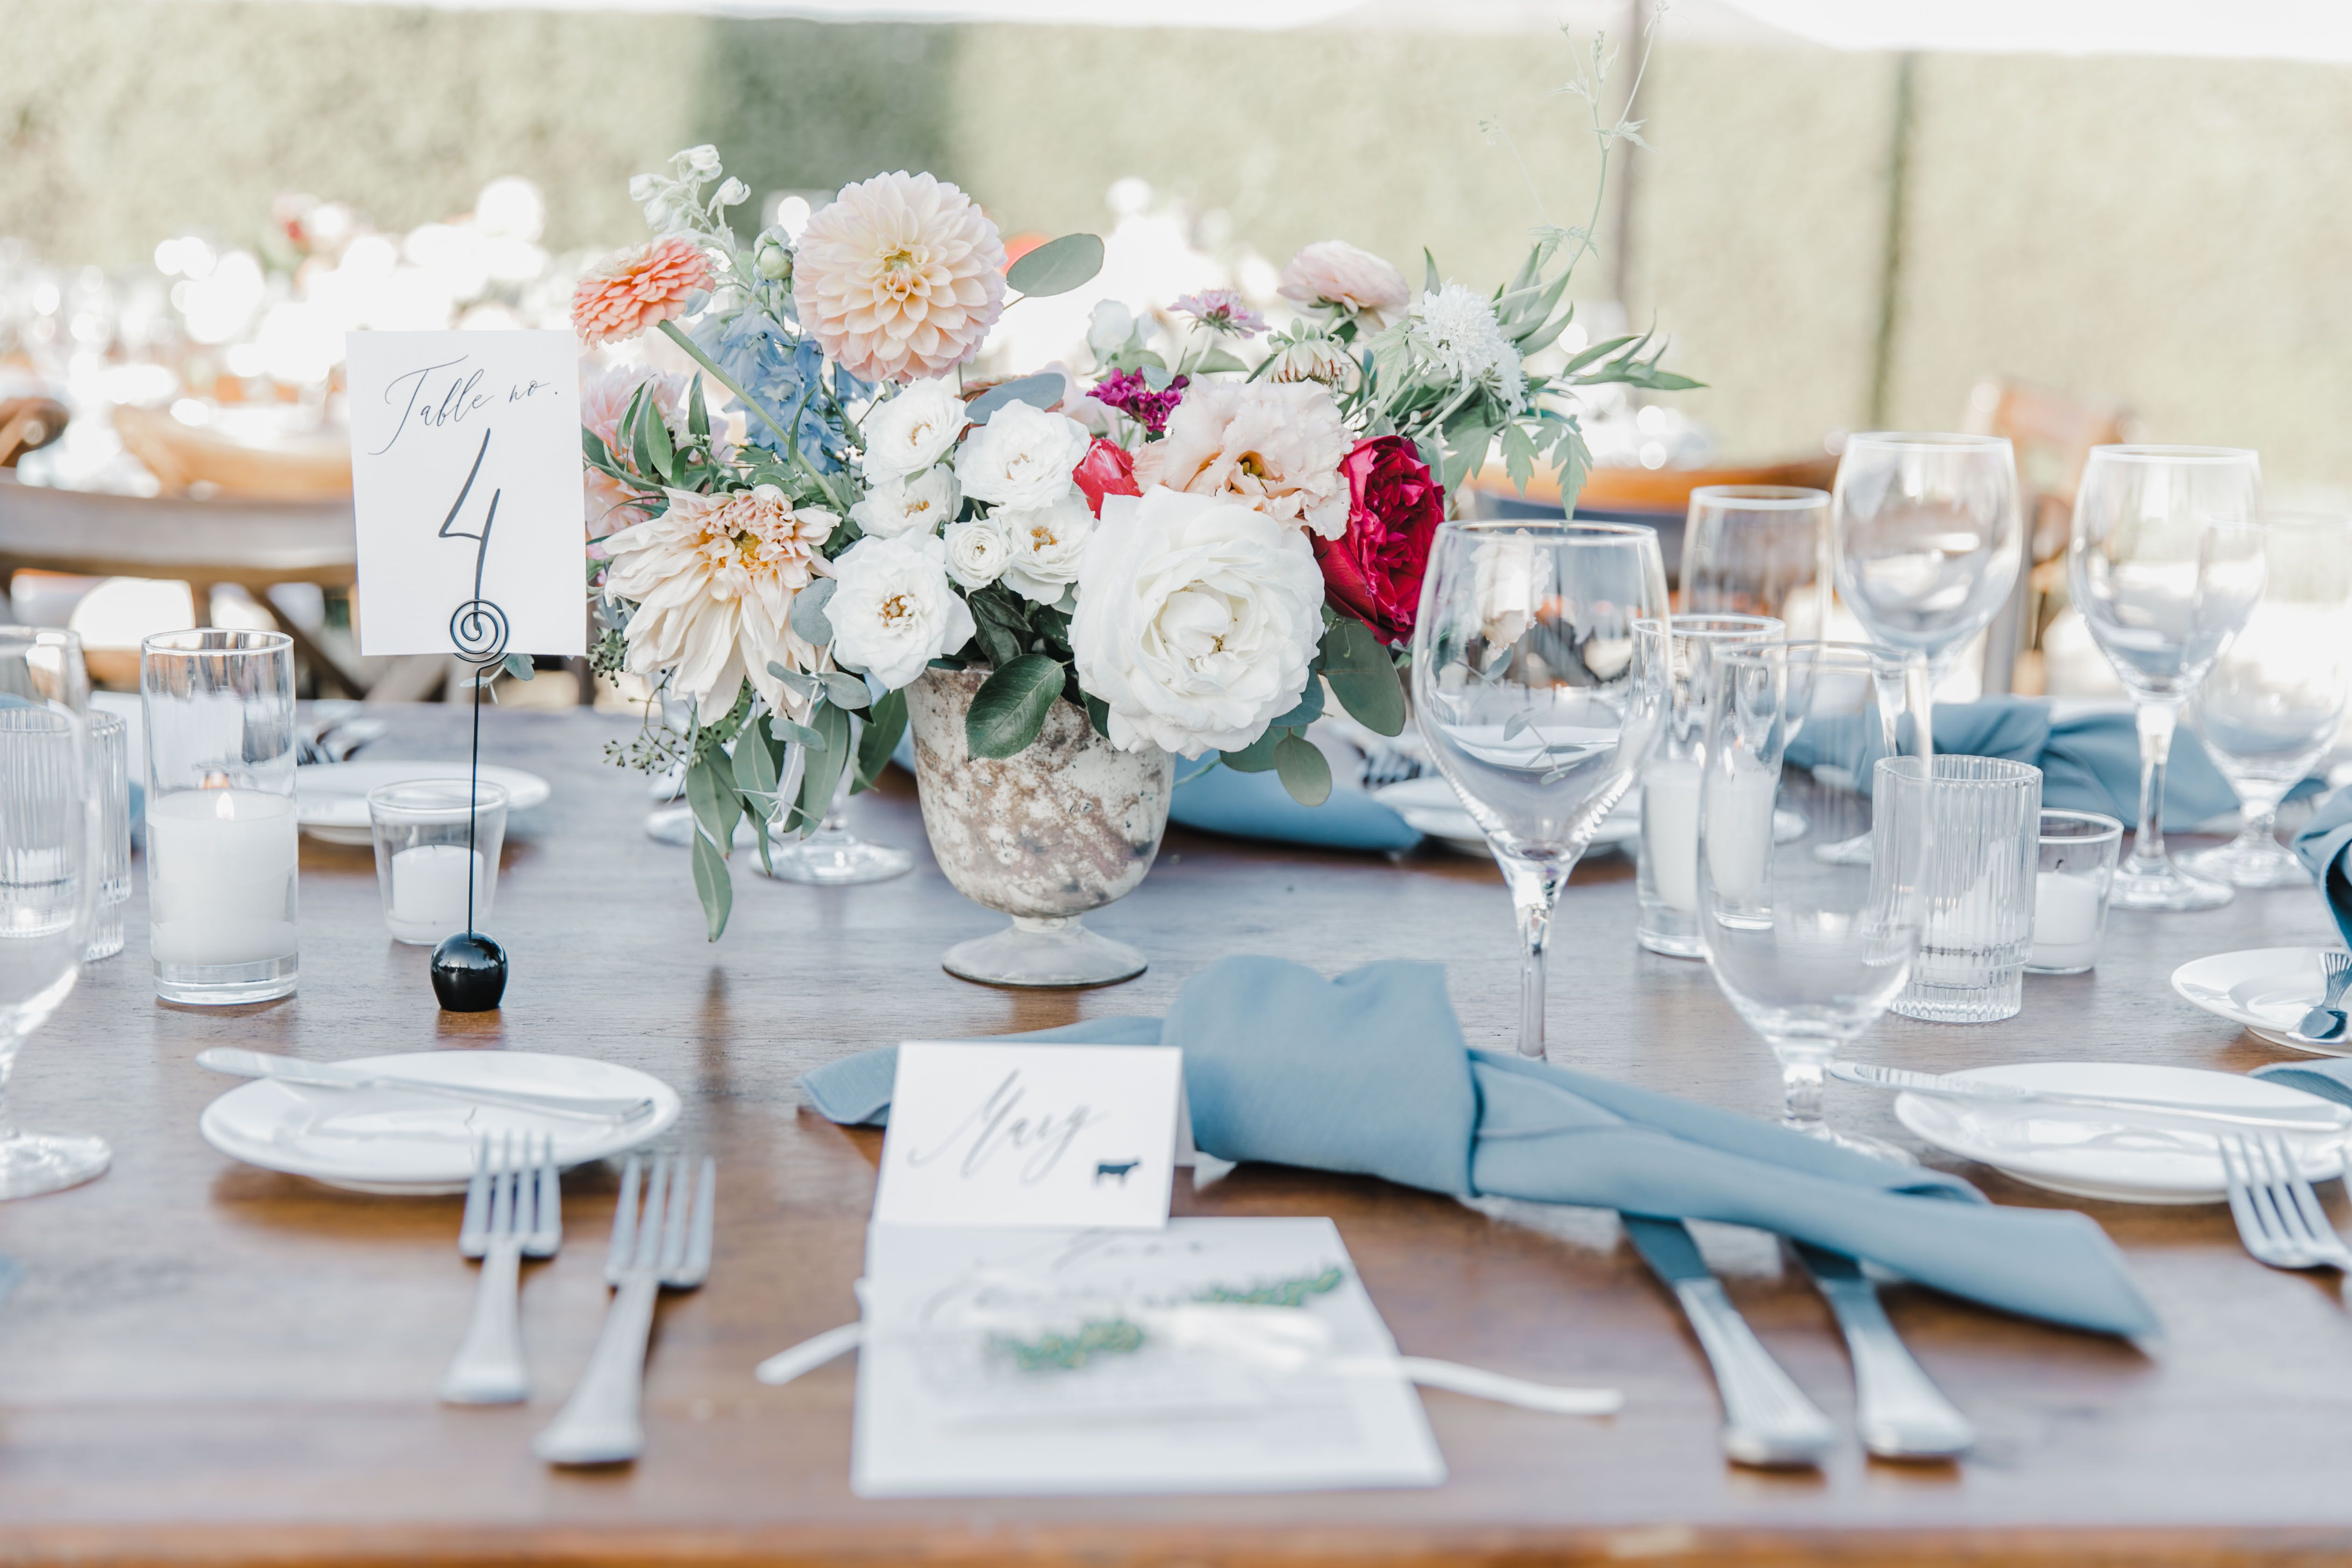 Photo by: Jessica Jaccarino Photography | #reception #tabledecor #coastcatering #catering #weddingfood #sandiego